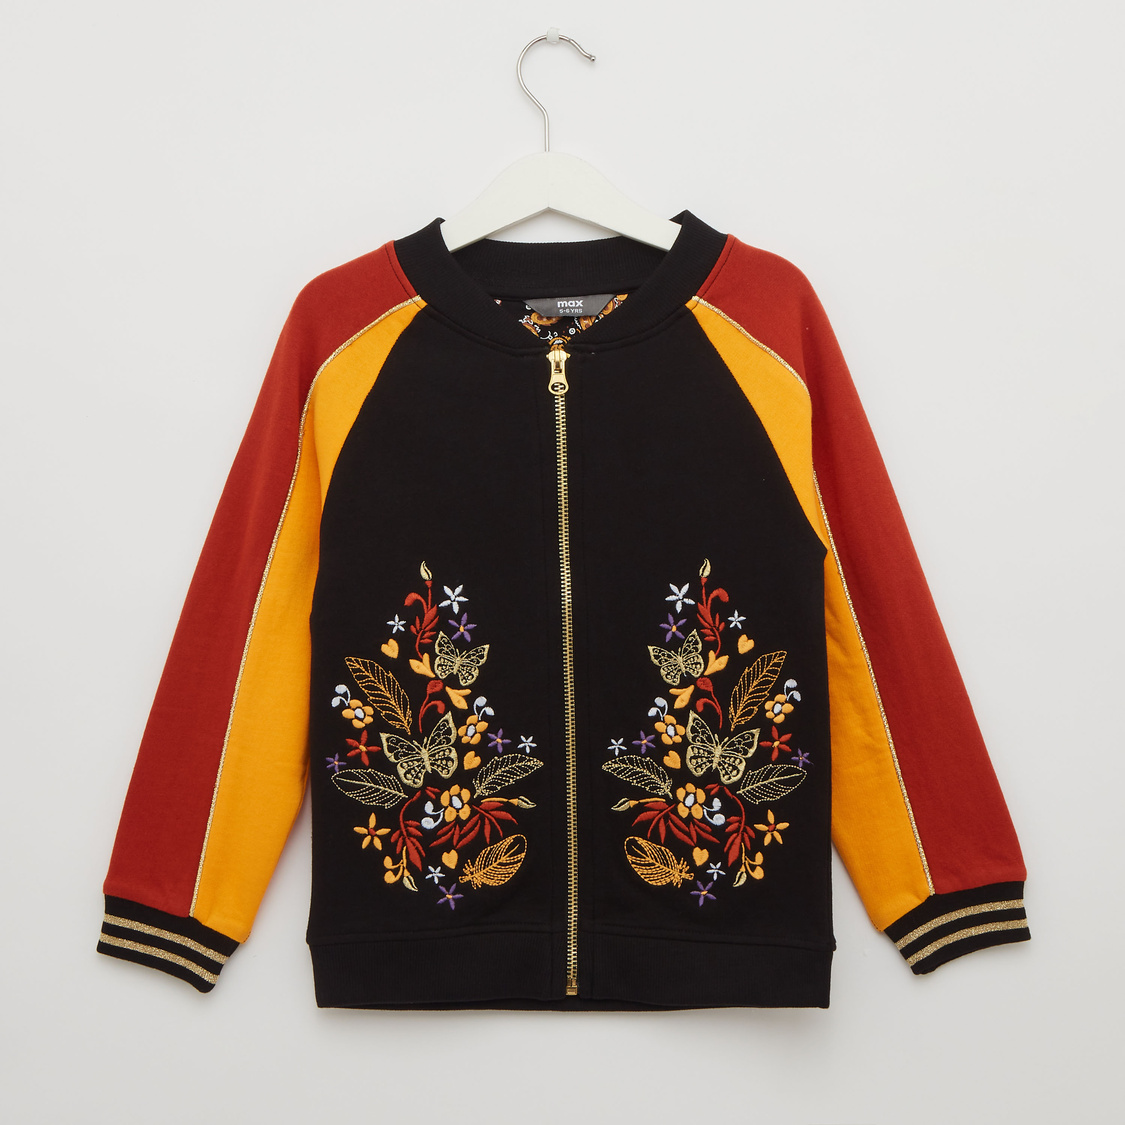 Embroidered Detail Bomber Jacket with Round Neck and Long Sleeves